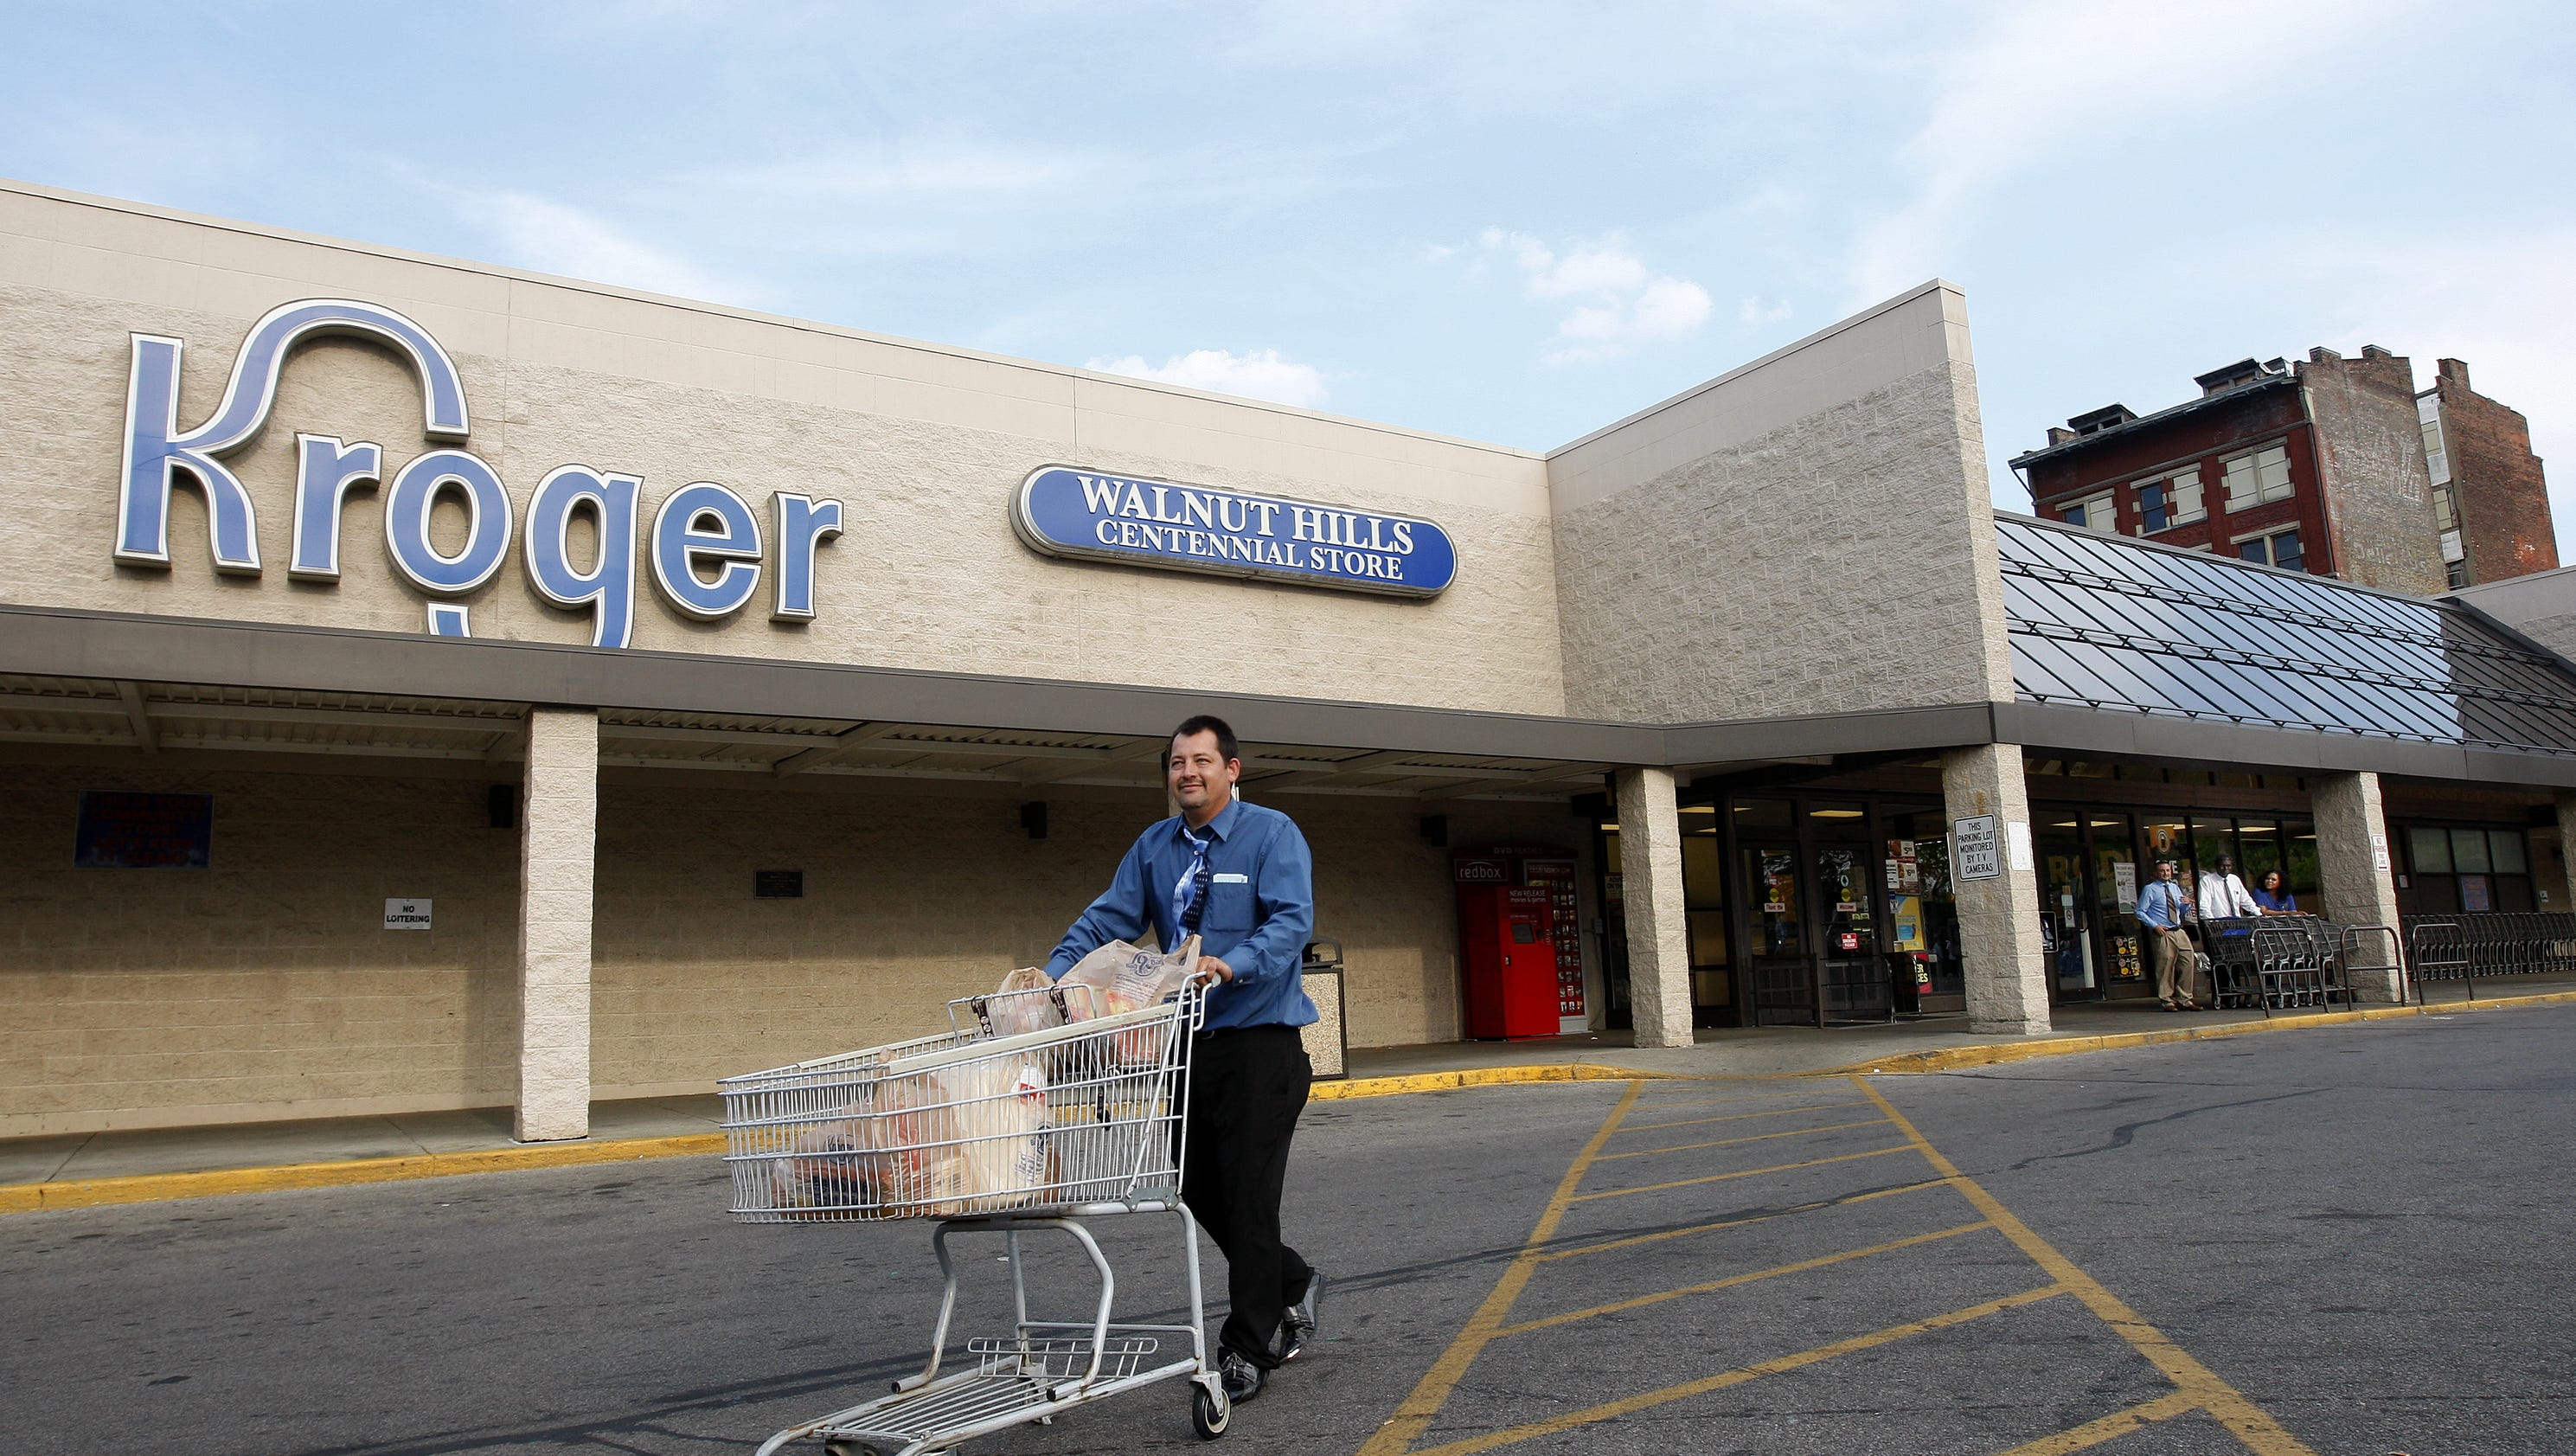 Kroger has changed their program. Now you can simply associate your Kroger Plus card to our organization and get credit each quarter.